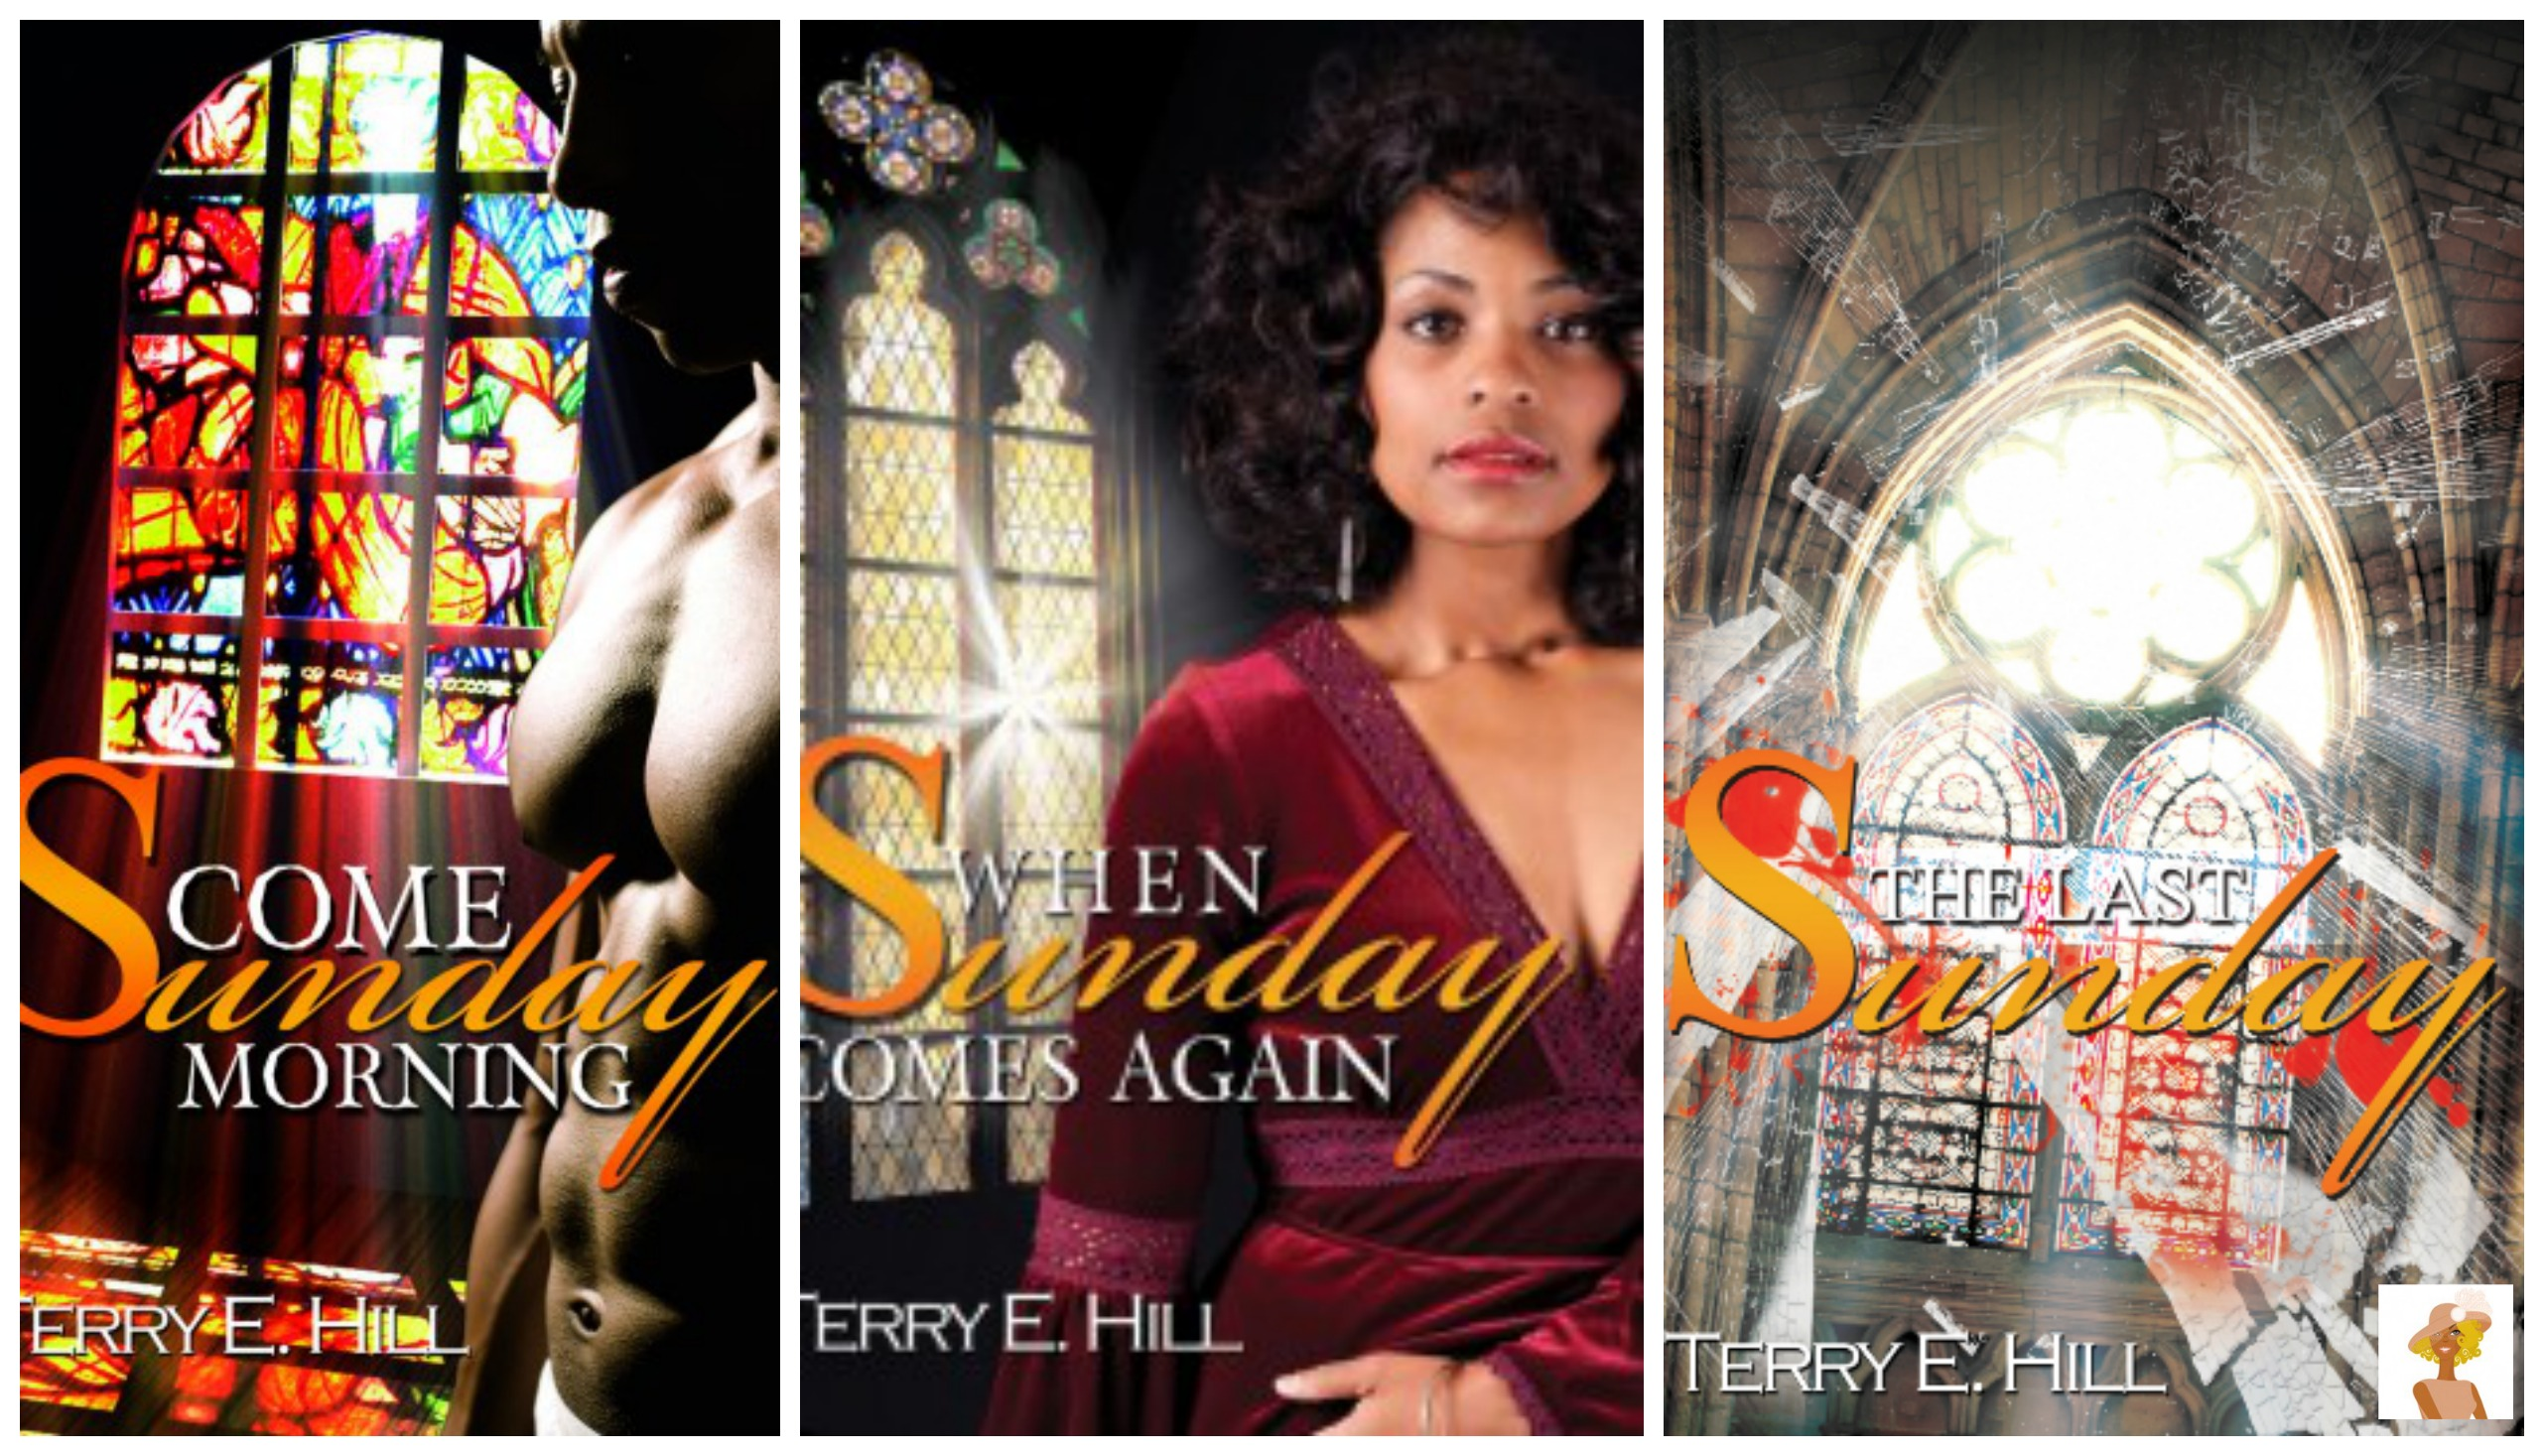 Terry Hill-Come Sunday book